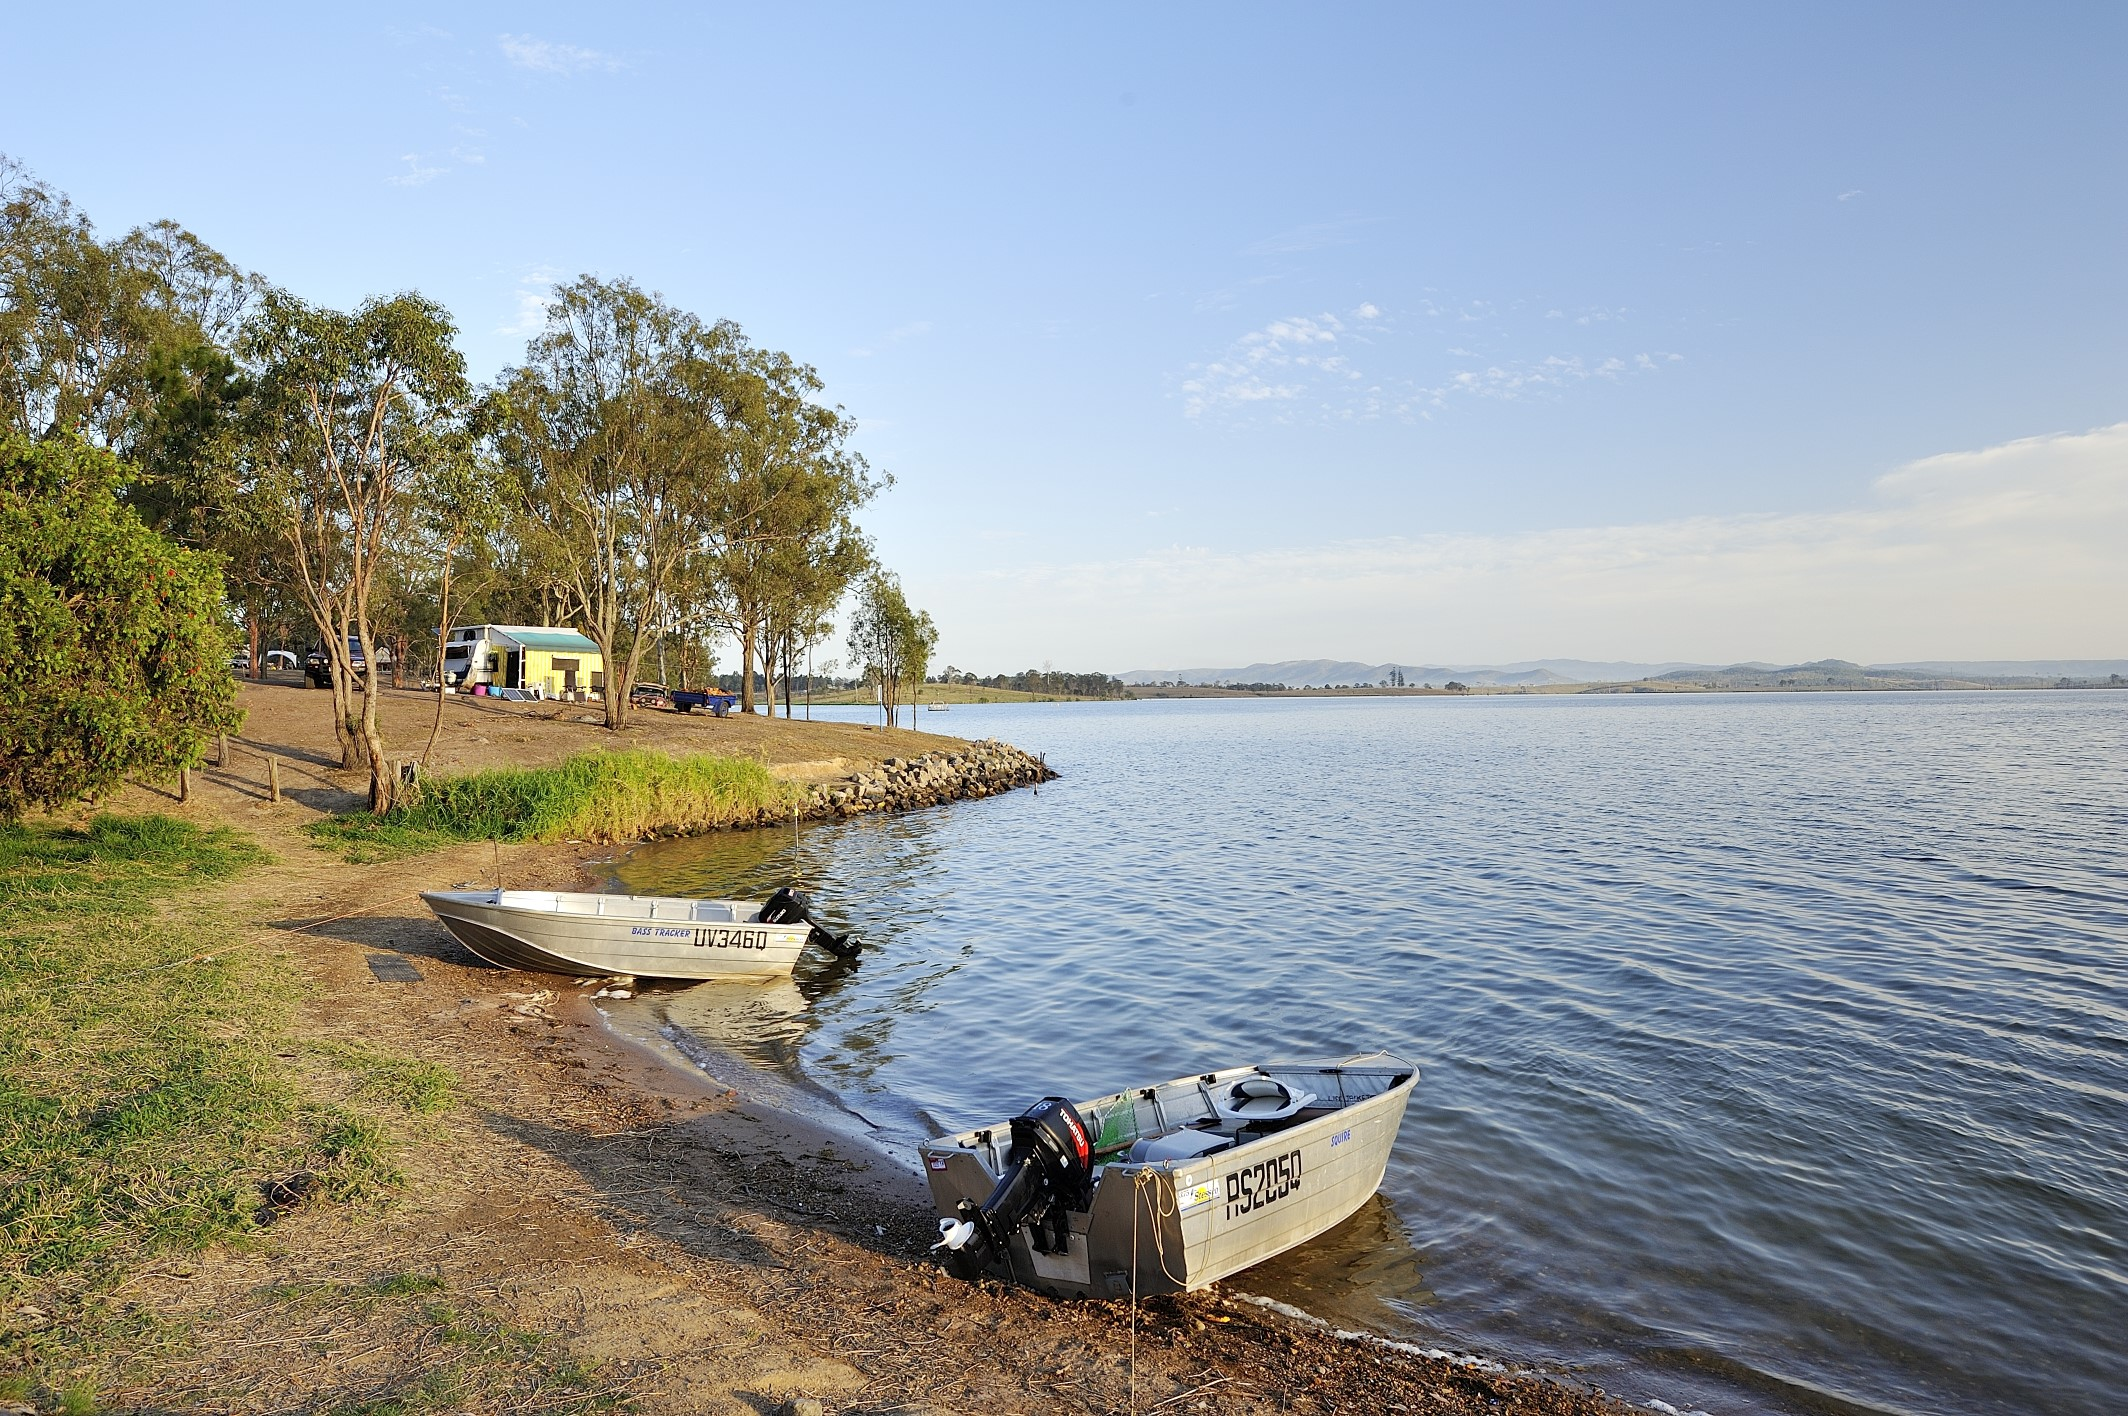 NRMA Lake Somerset Holiday Park - Hazeldean photo 1